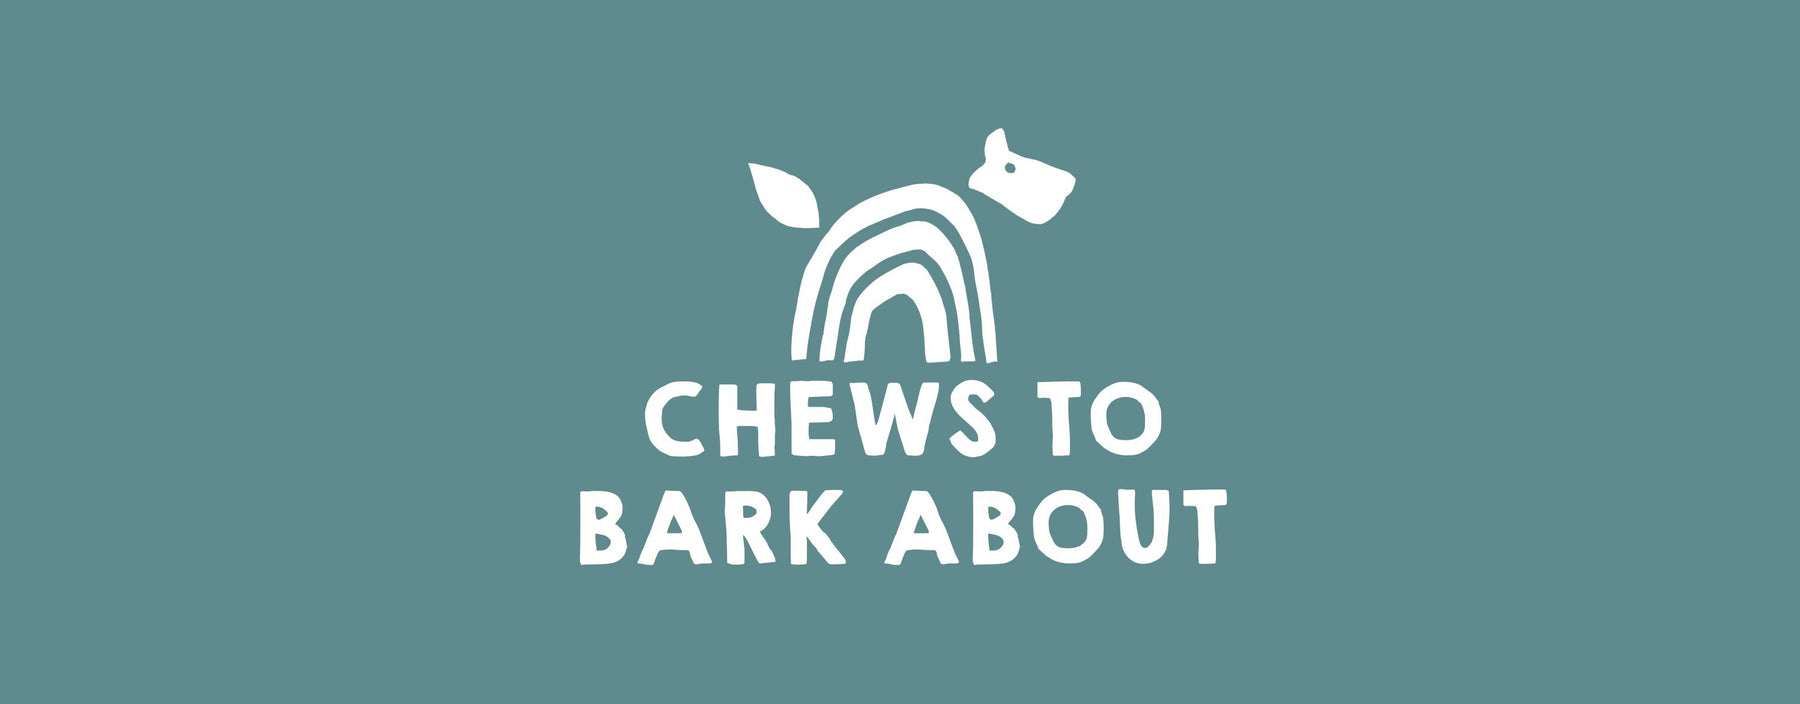 Chews To Bark About